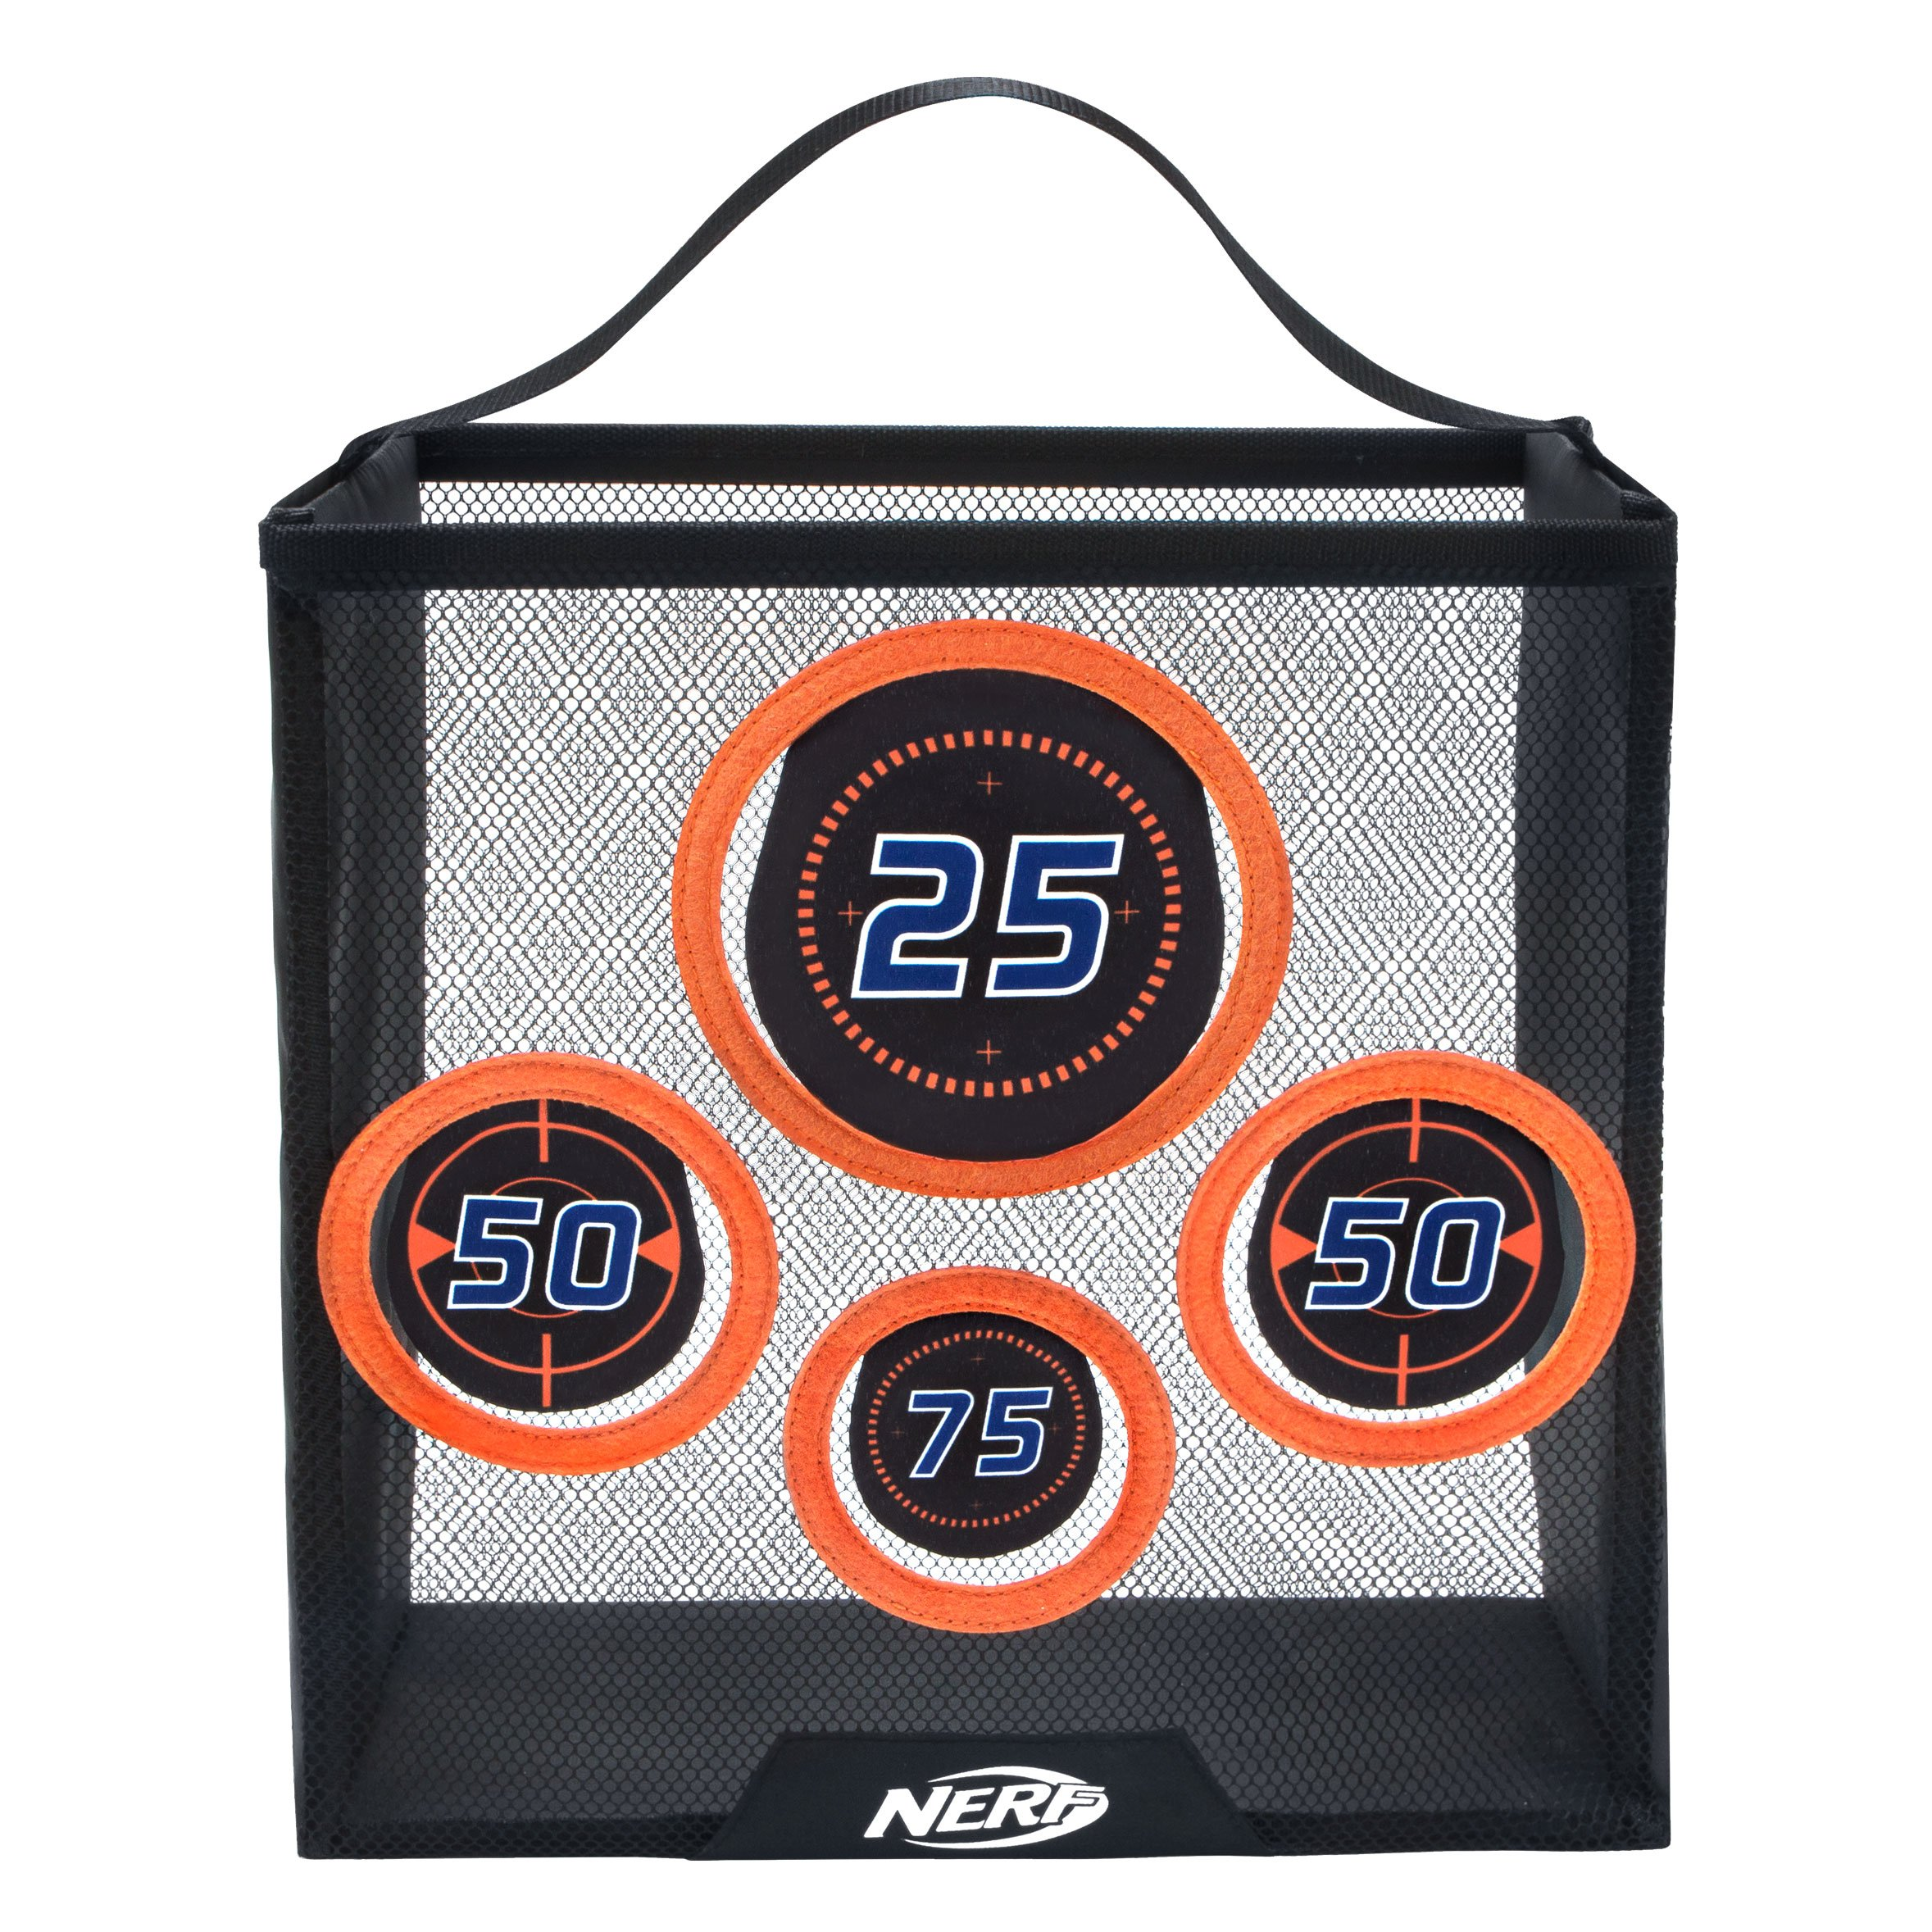 NERF Elite Portable Practice Target by NERF